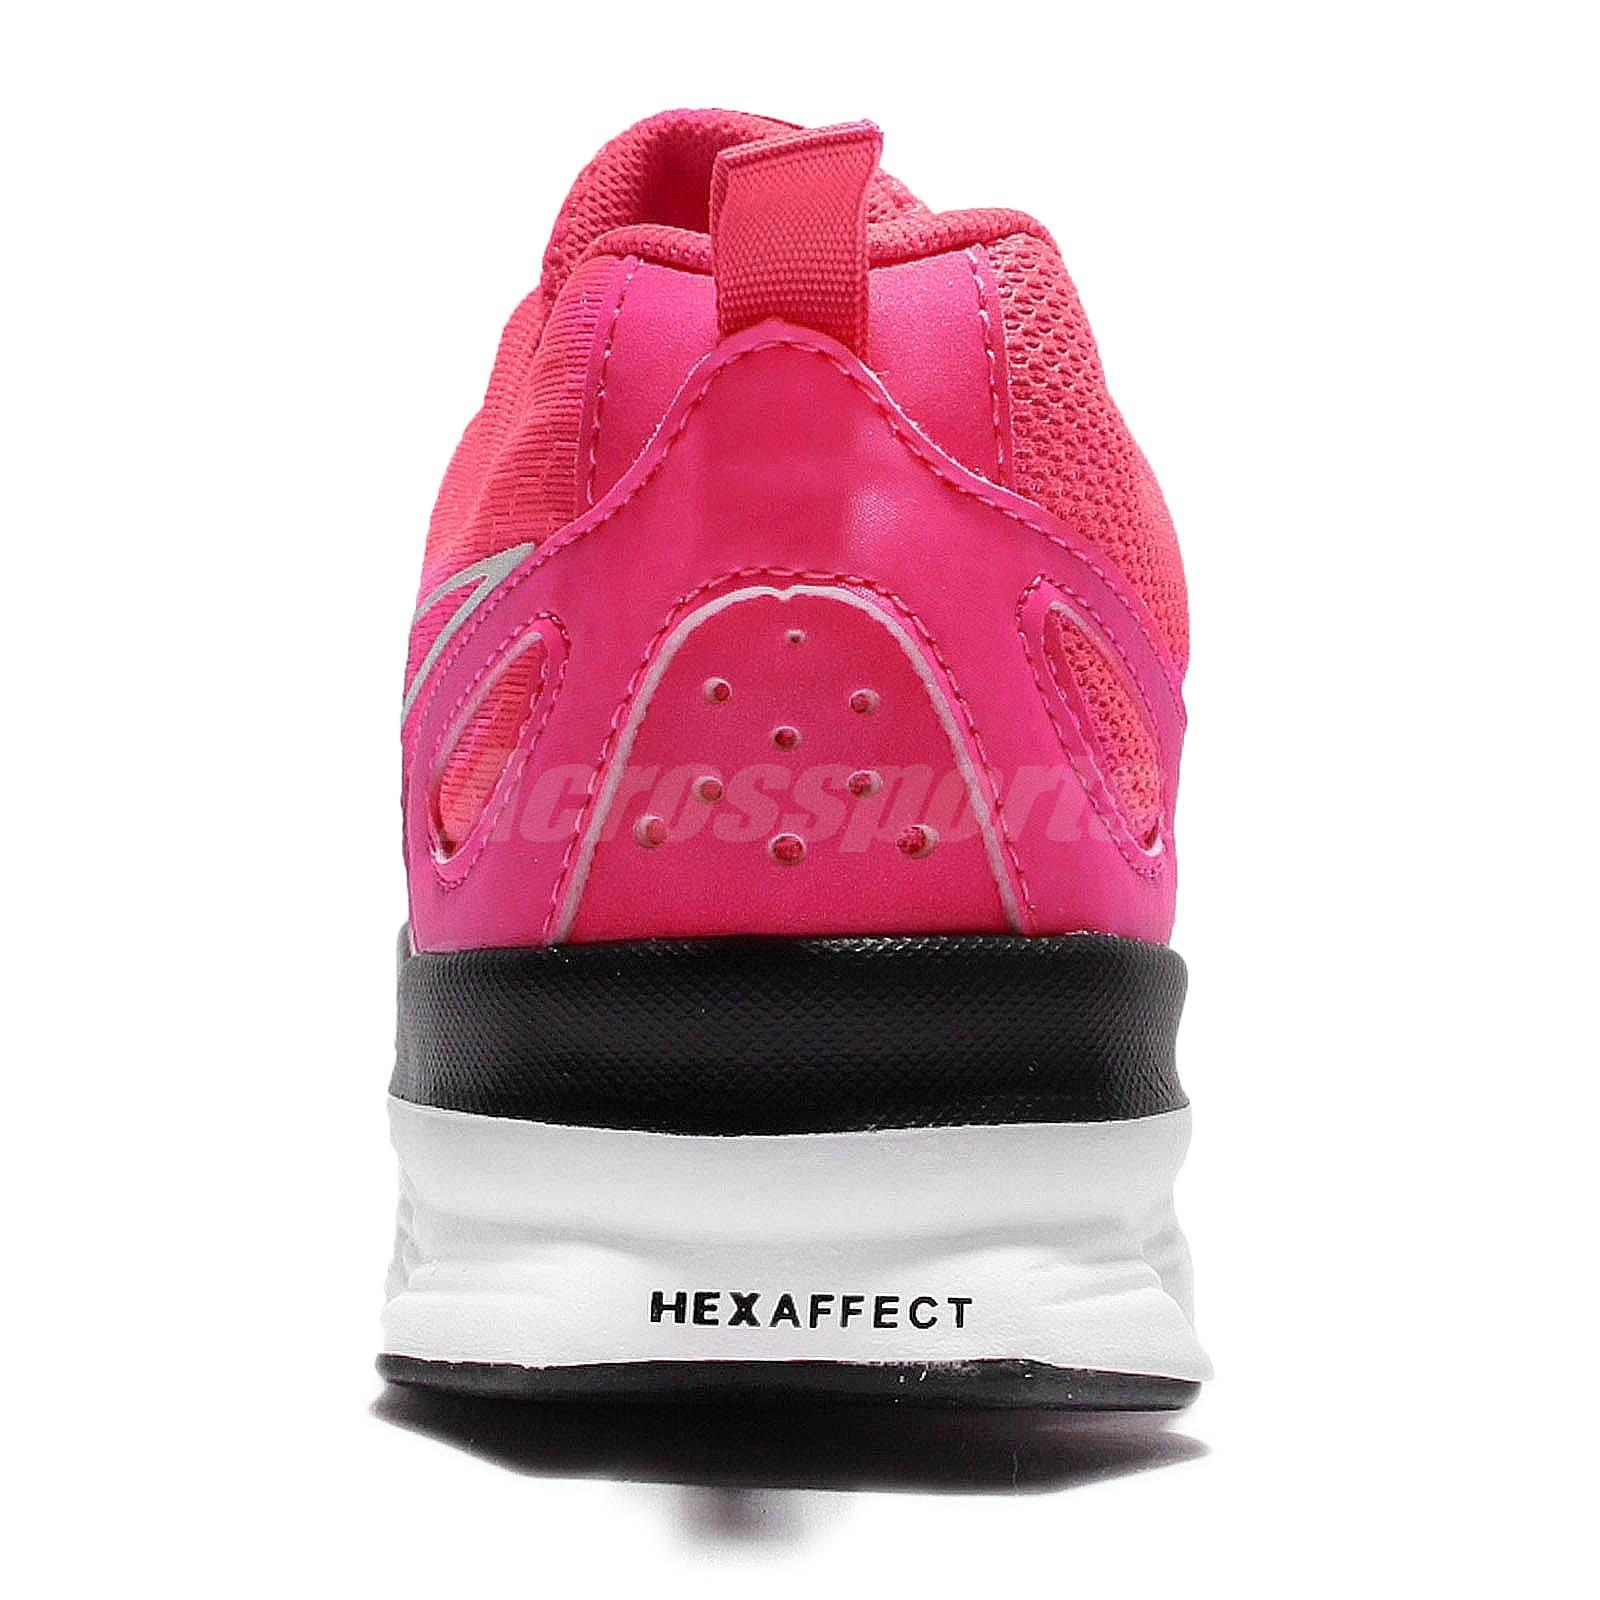 Reebok Hexaffect Run LE Pink White Women Running Shoes Sneakers ... 708df34f9